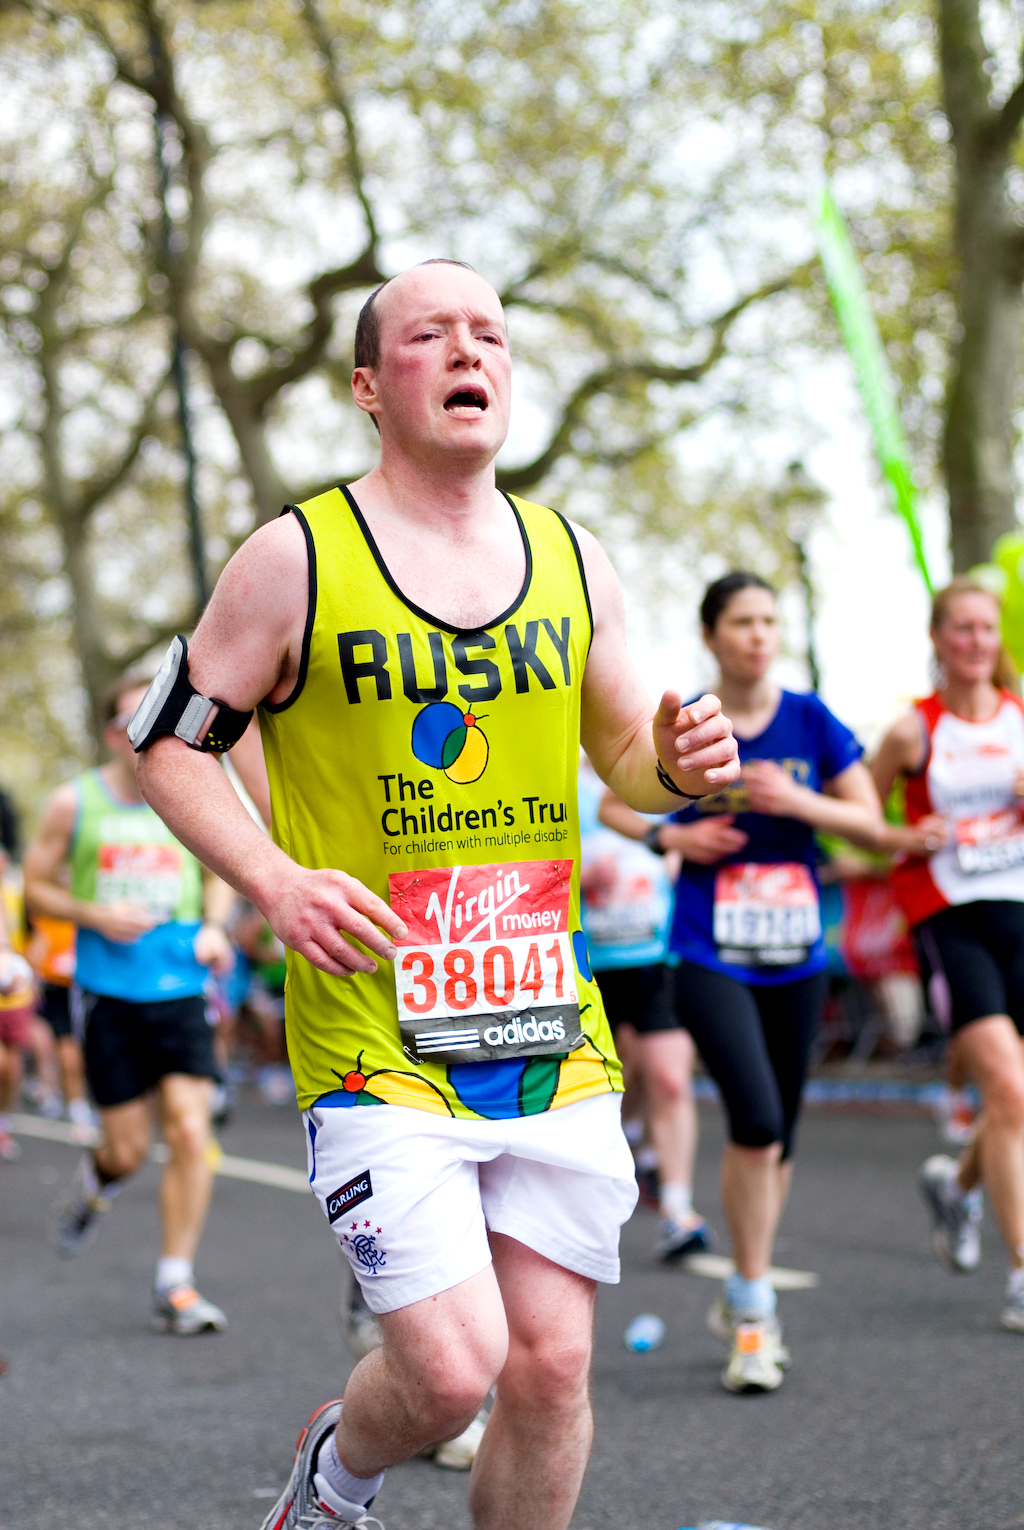 London Marathon 2011 - Mile 24.75